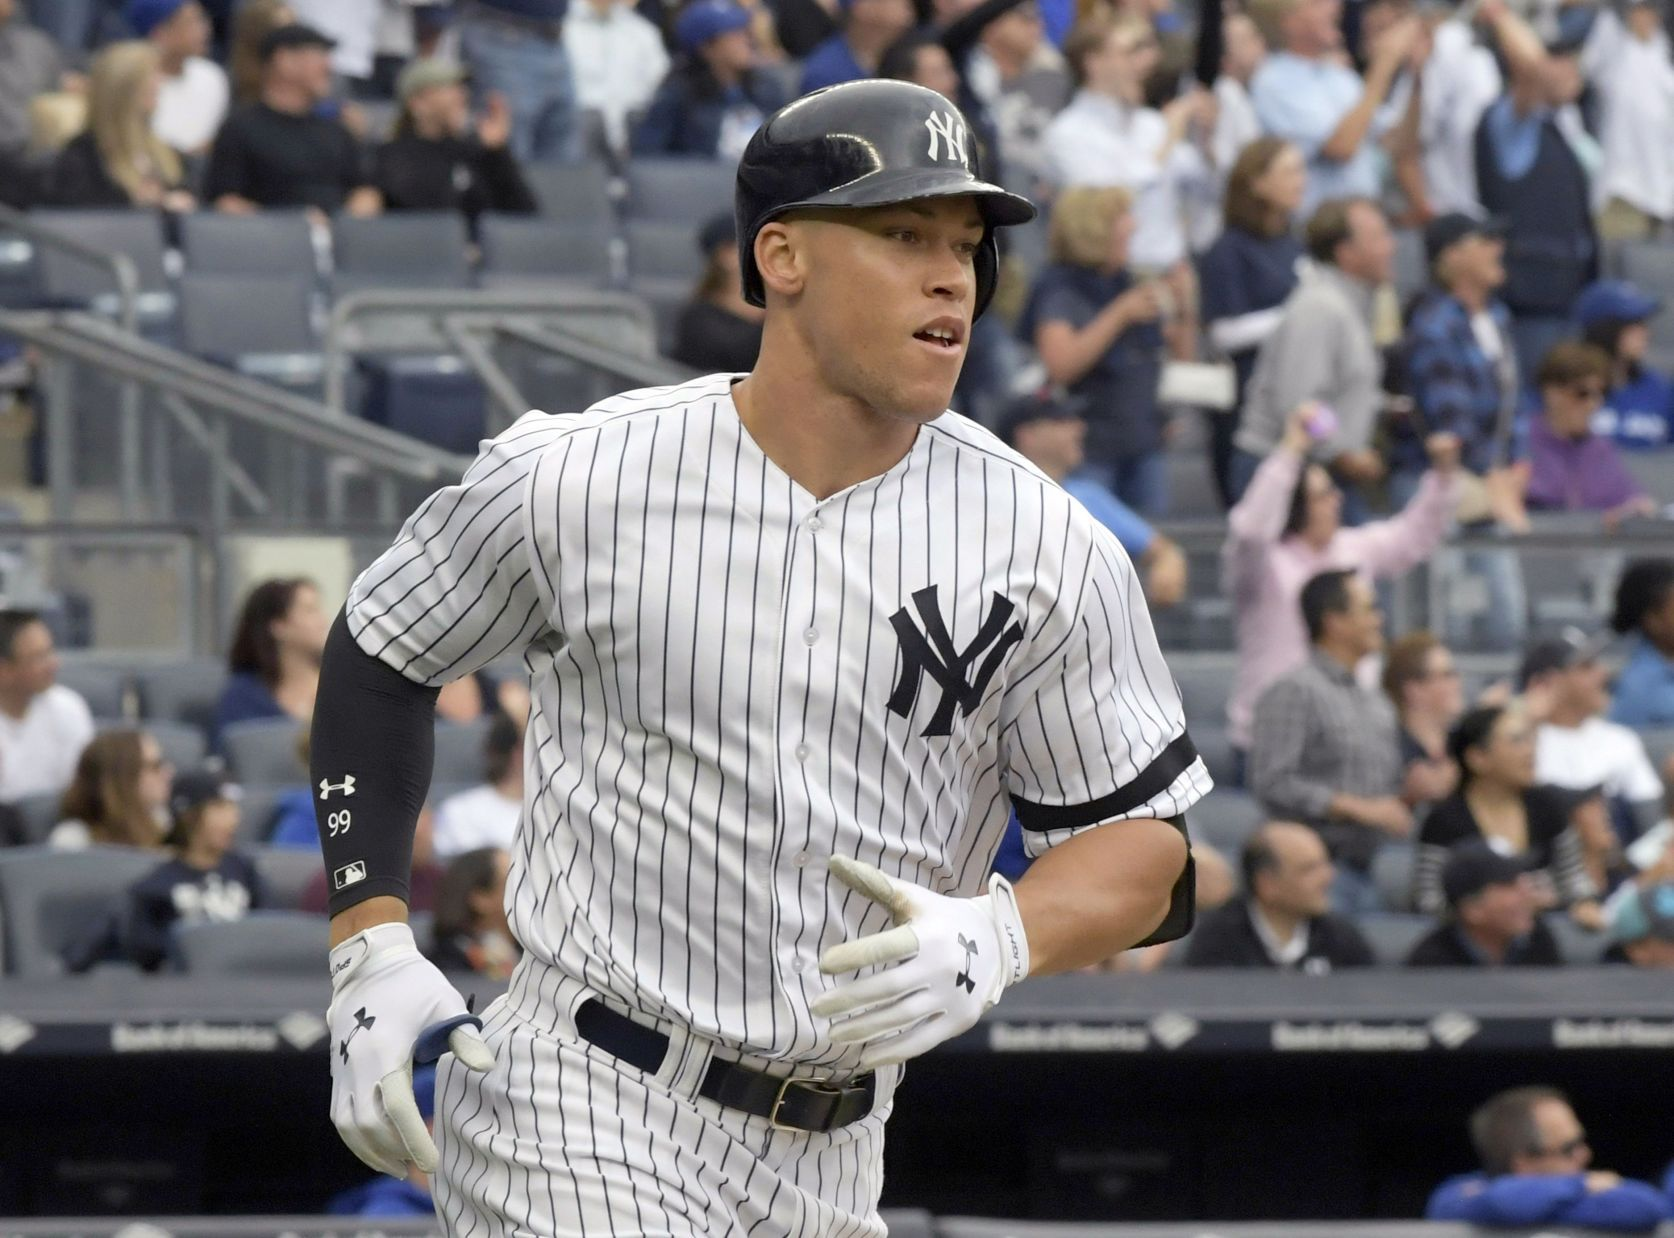 Giancarlo Stanton hits two home runs, needs one more for 60